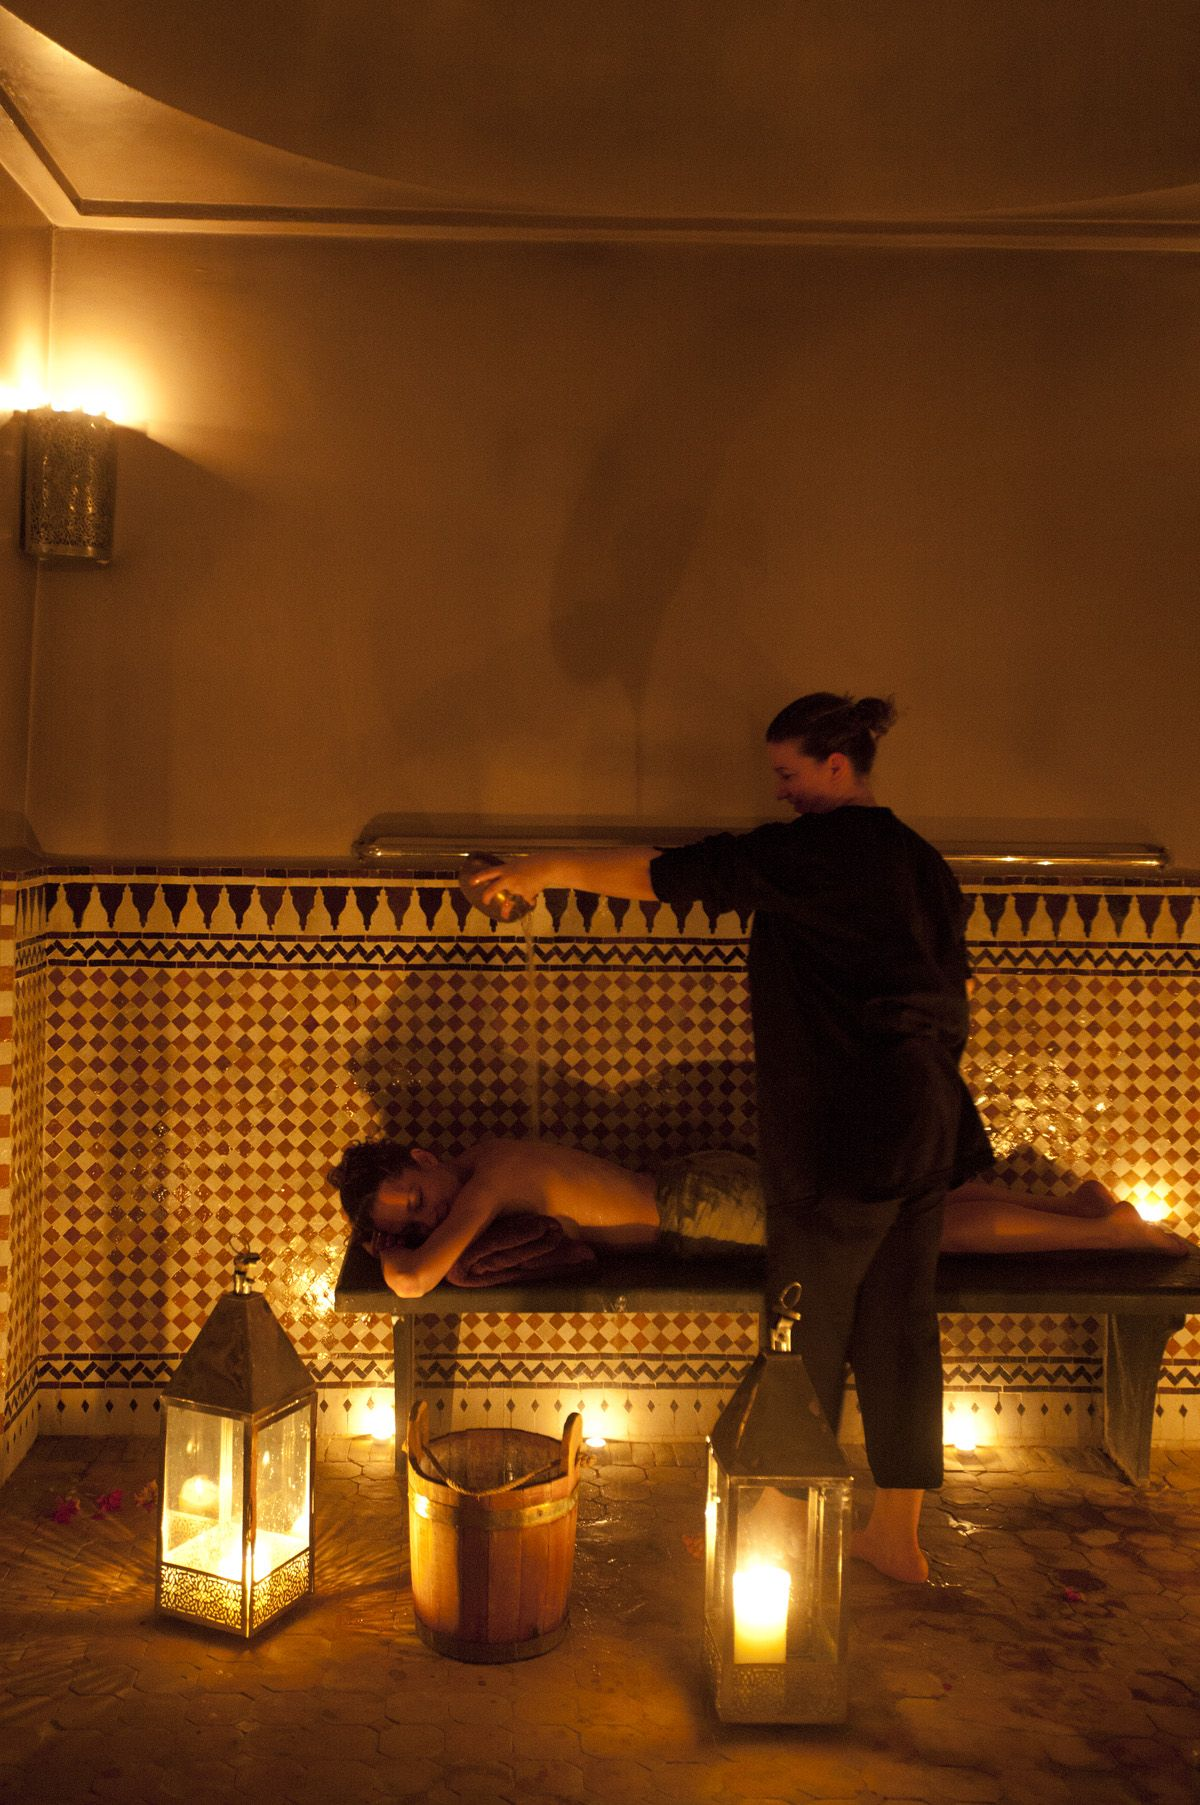 Salon De Massage Marocain Traditional Hammam Treatment Done Individually With Relaxation